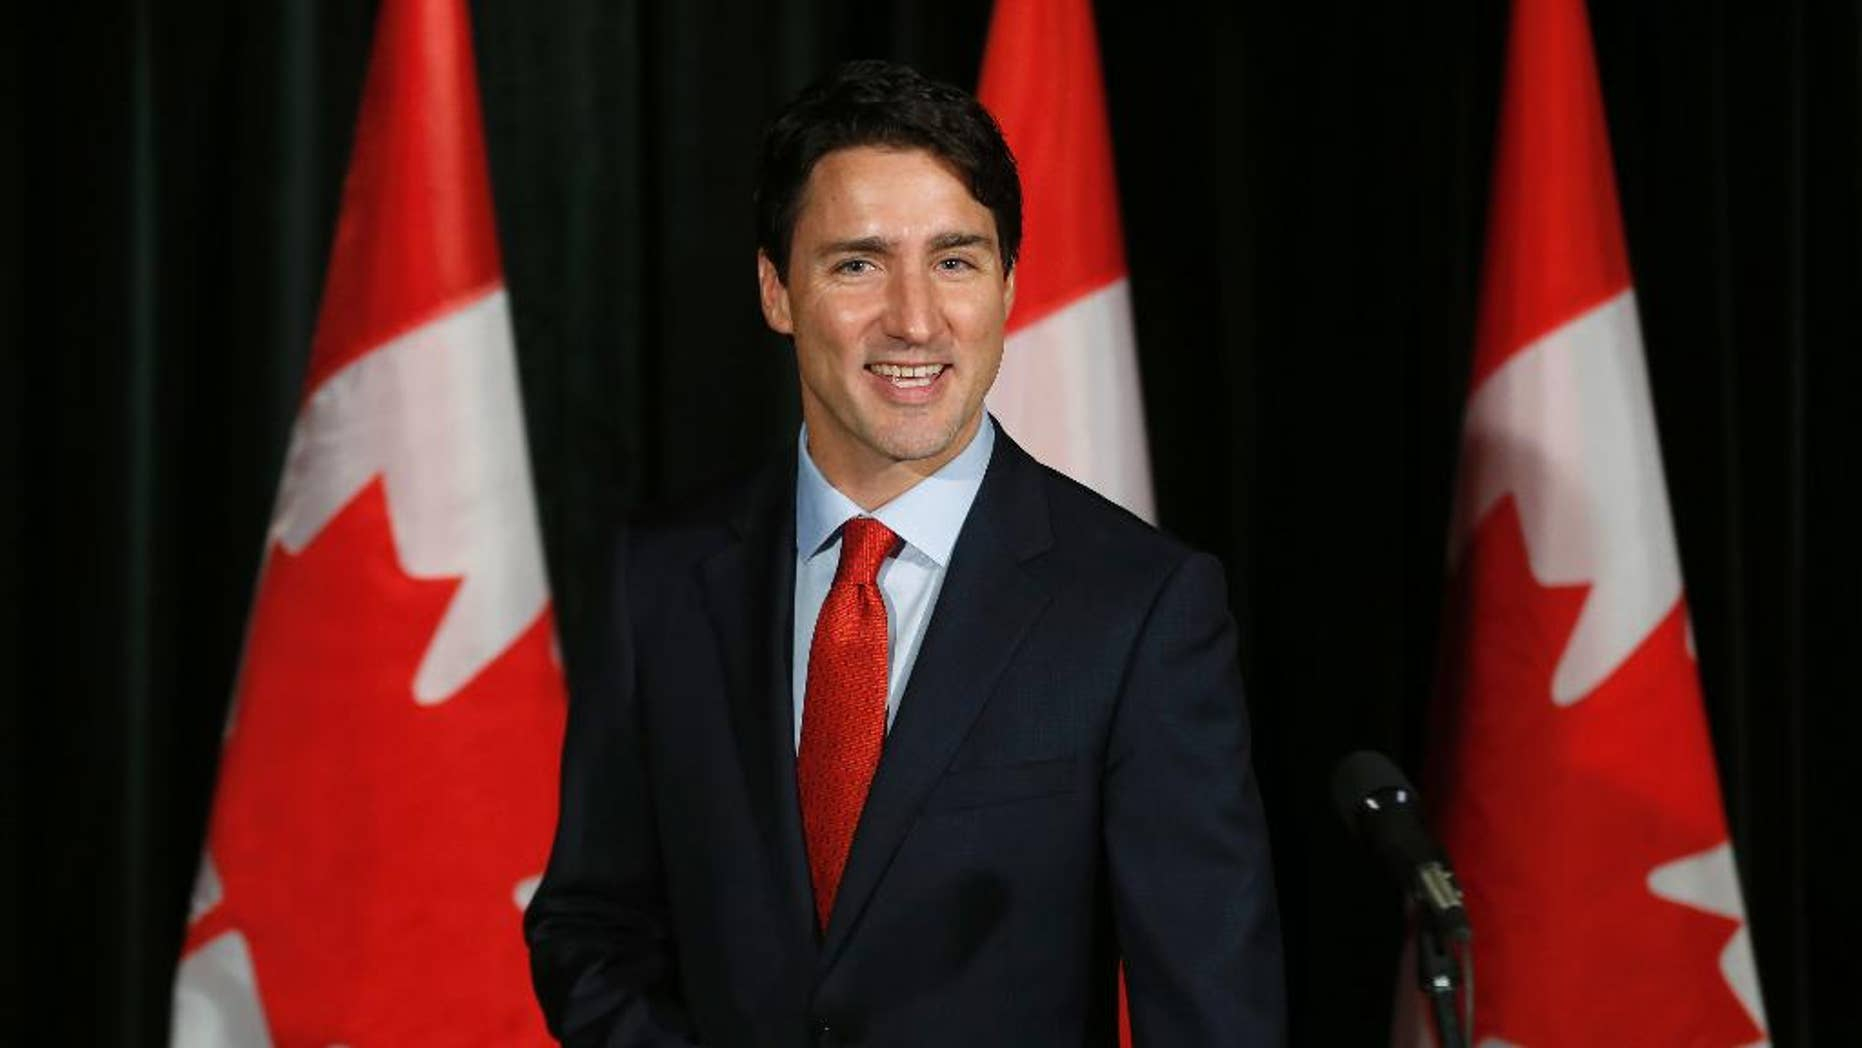 Canadian Prime Minister Justin Trudeau greets the press before going into the Liberal cabinet retreat in Calgary, Alberta, Monday, Jan. 23, 2017. (Todd Korol/The Canadian Press via AP)